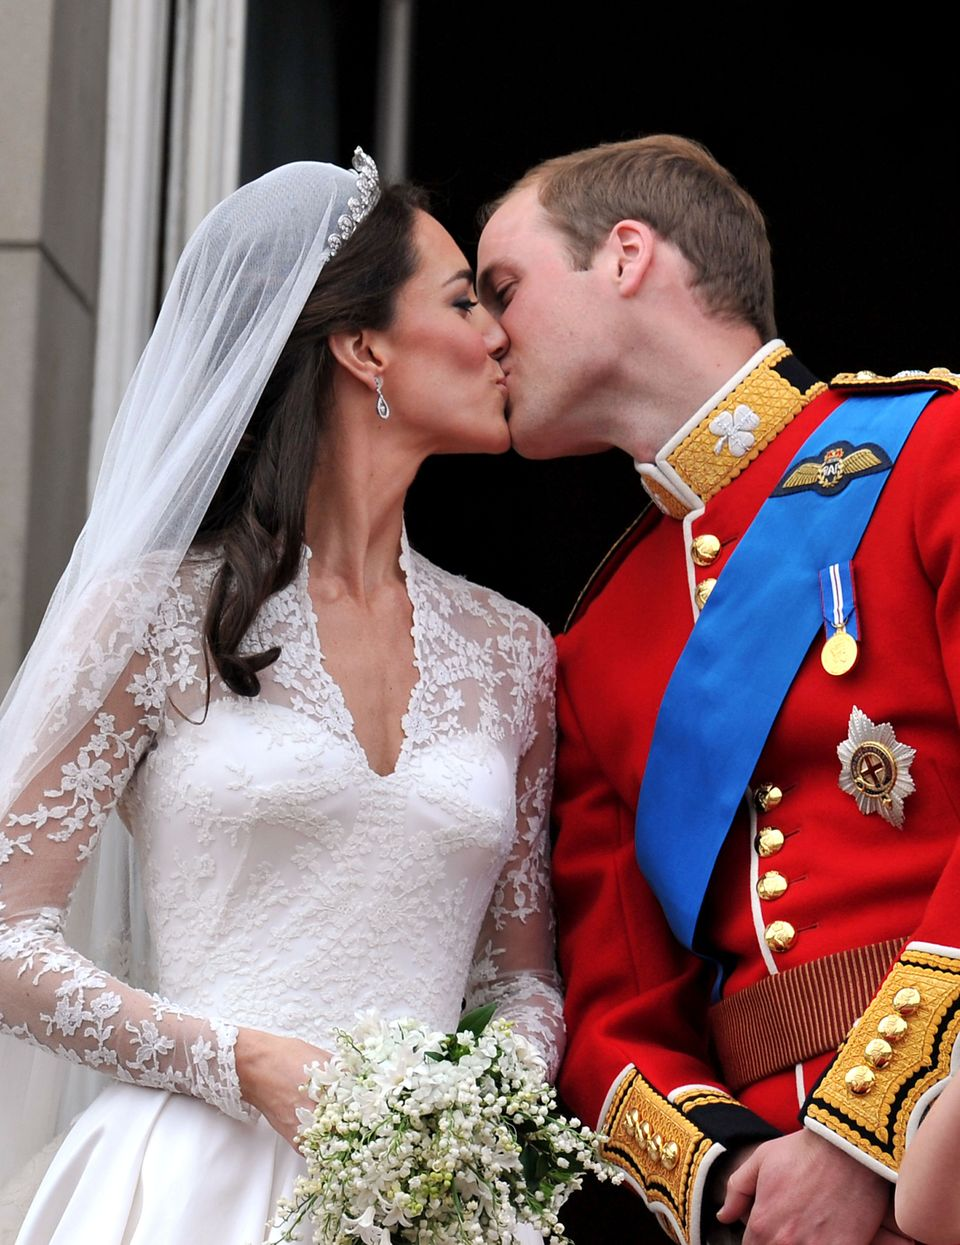 The wedding of Prince William and Catherine Middleton took place on 29 April 2011